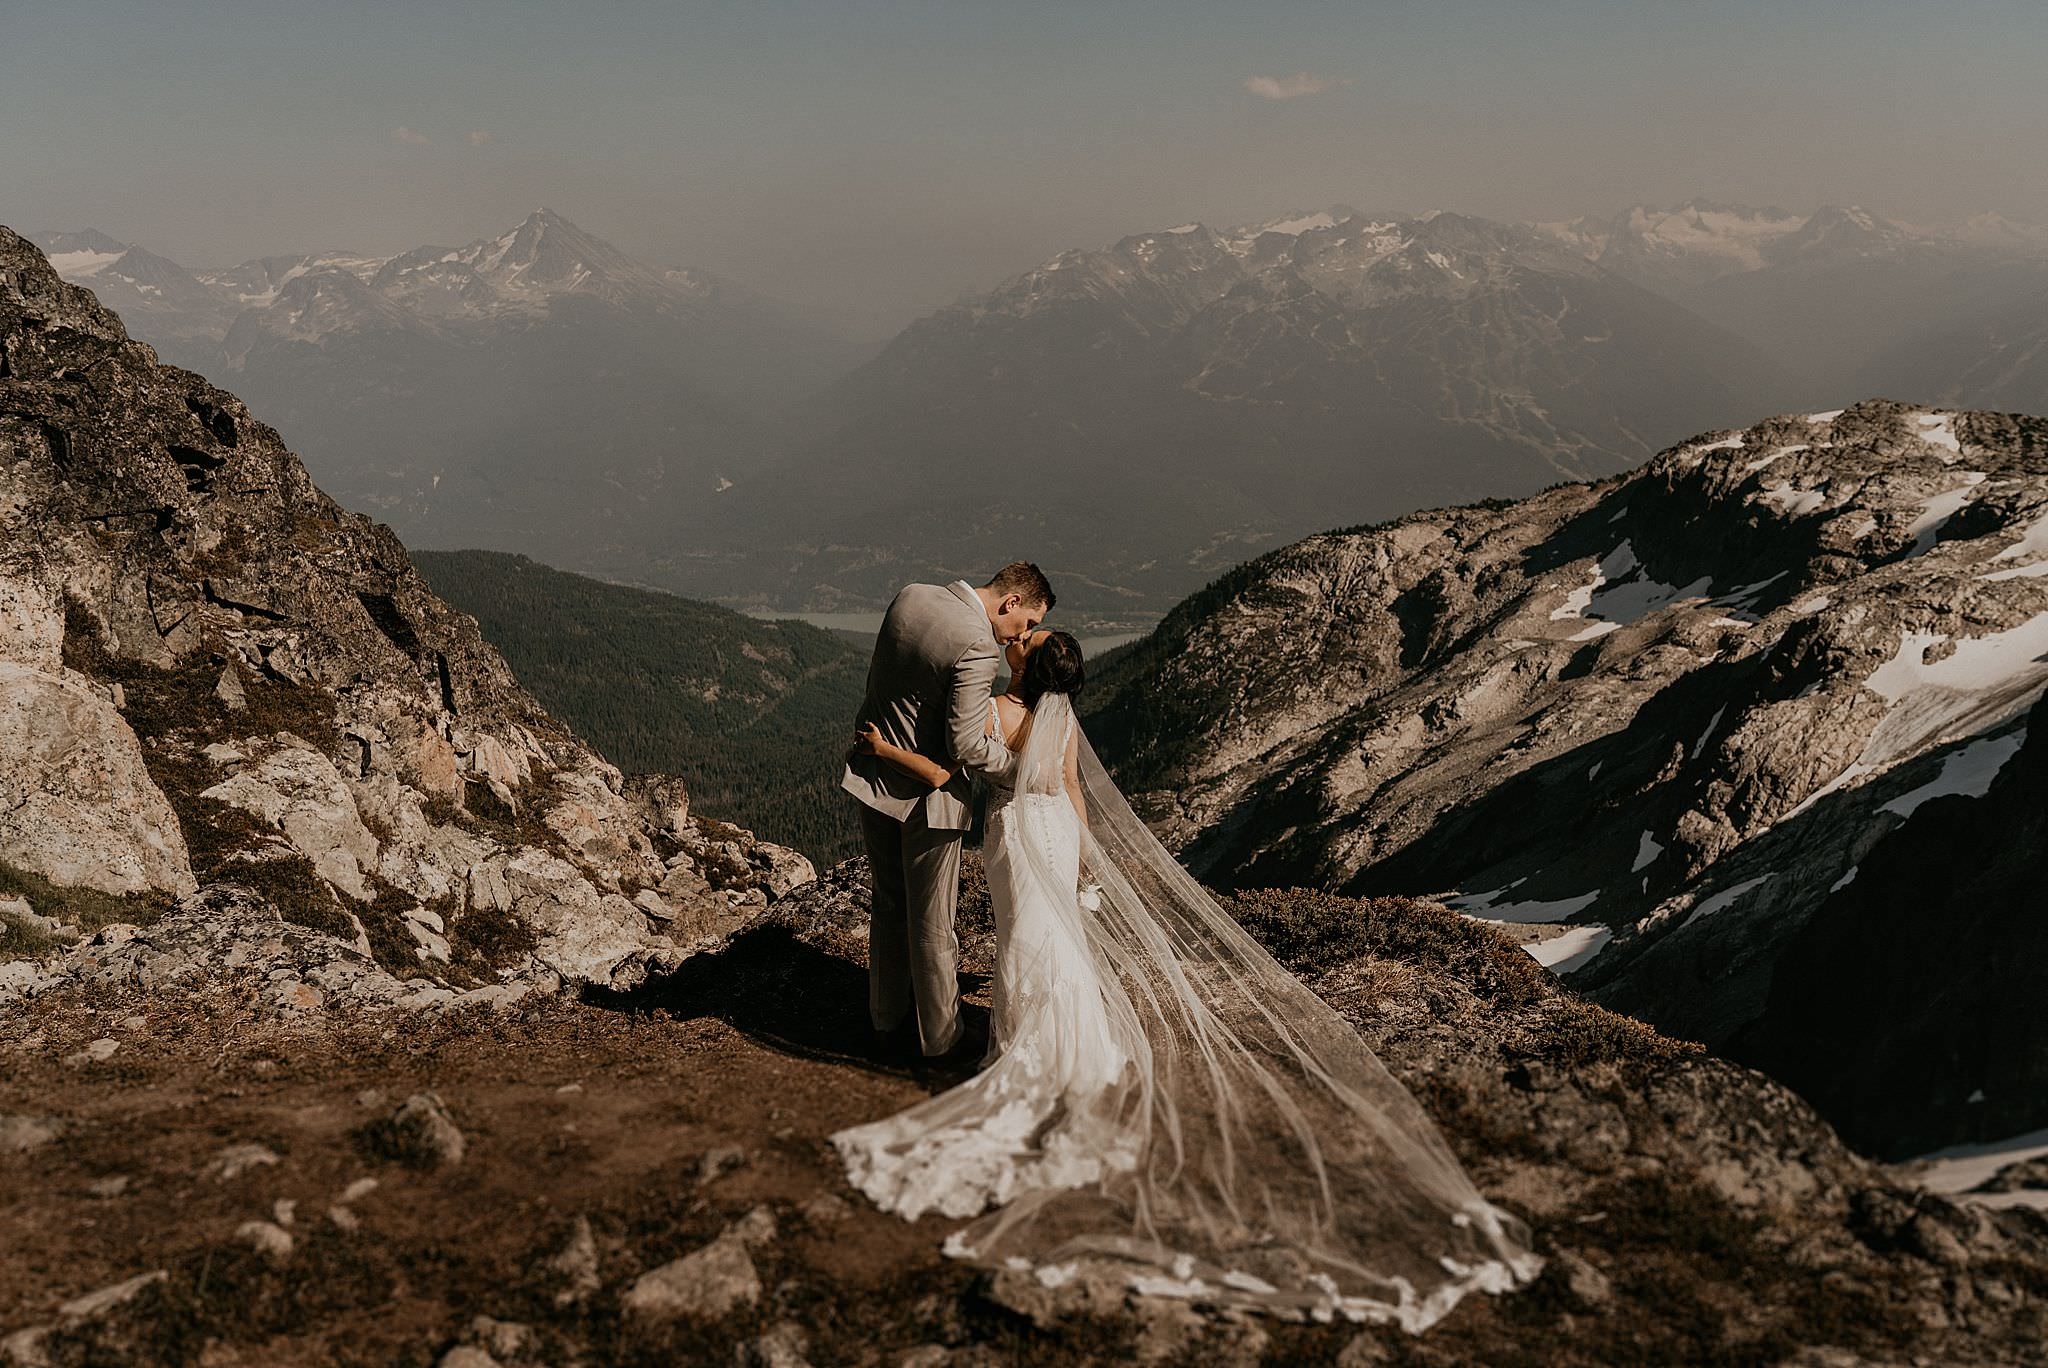 whistler-mountain-helicopter-elopement-wedding_0103.jpg